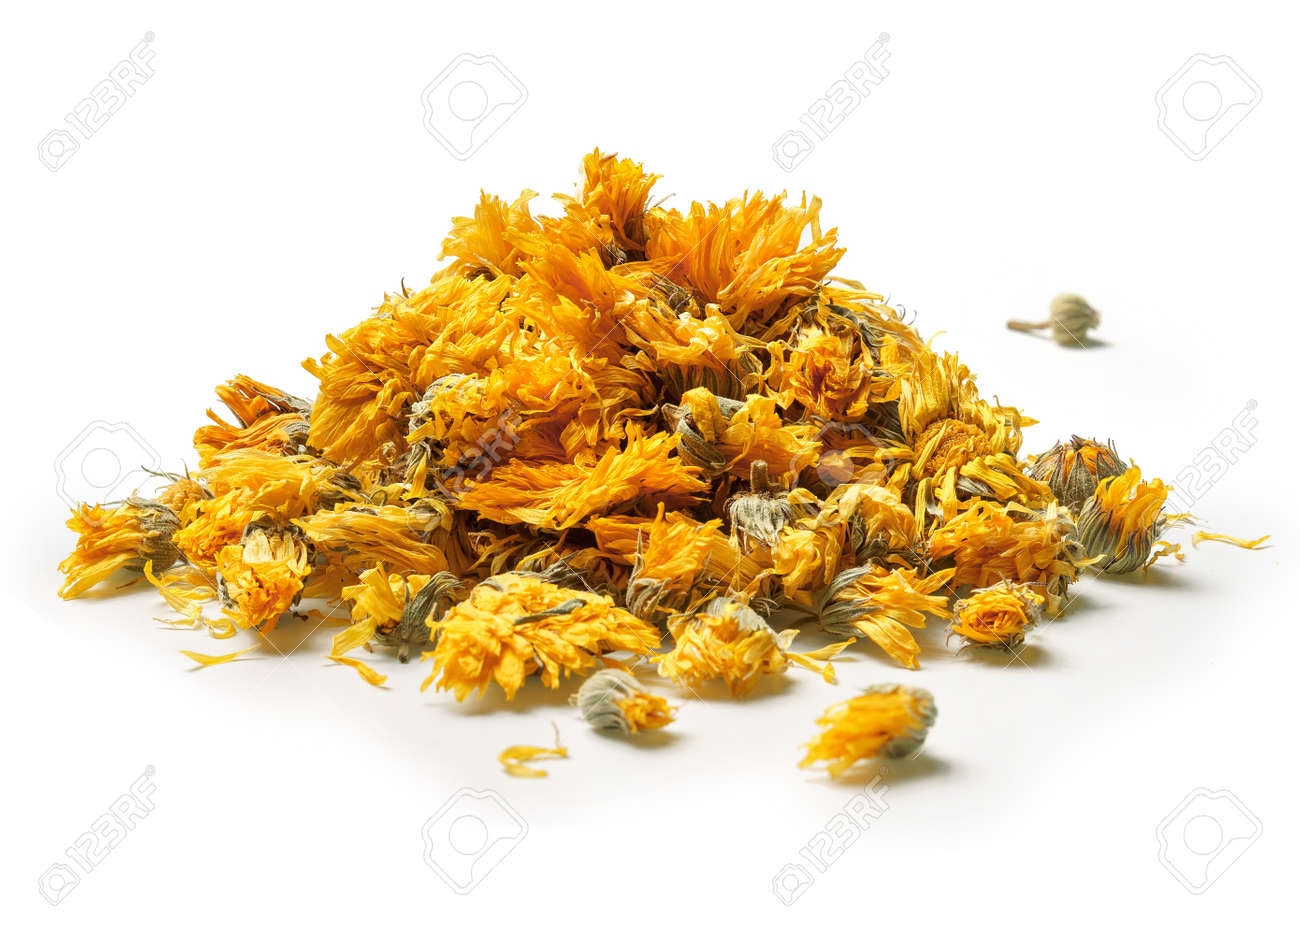 Heap of medicinal flowers of a calendula on white background. Herbal tea. Close up. High resolution - 119138399